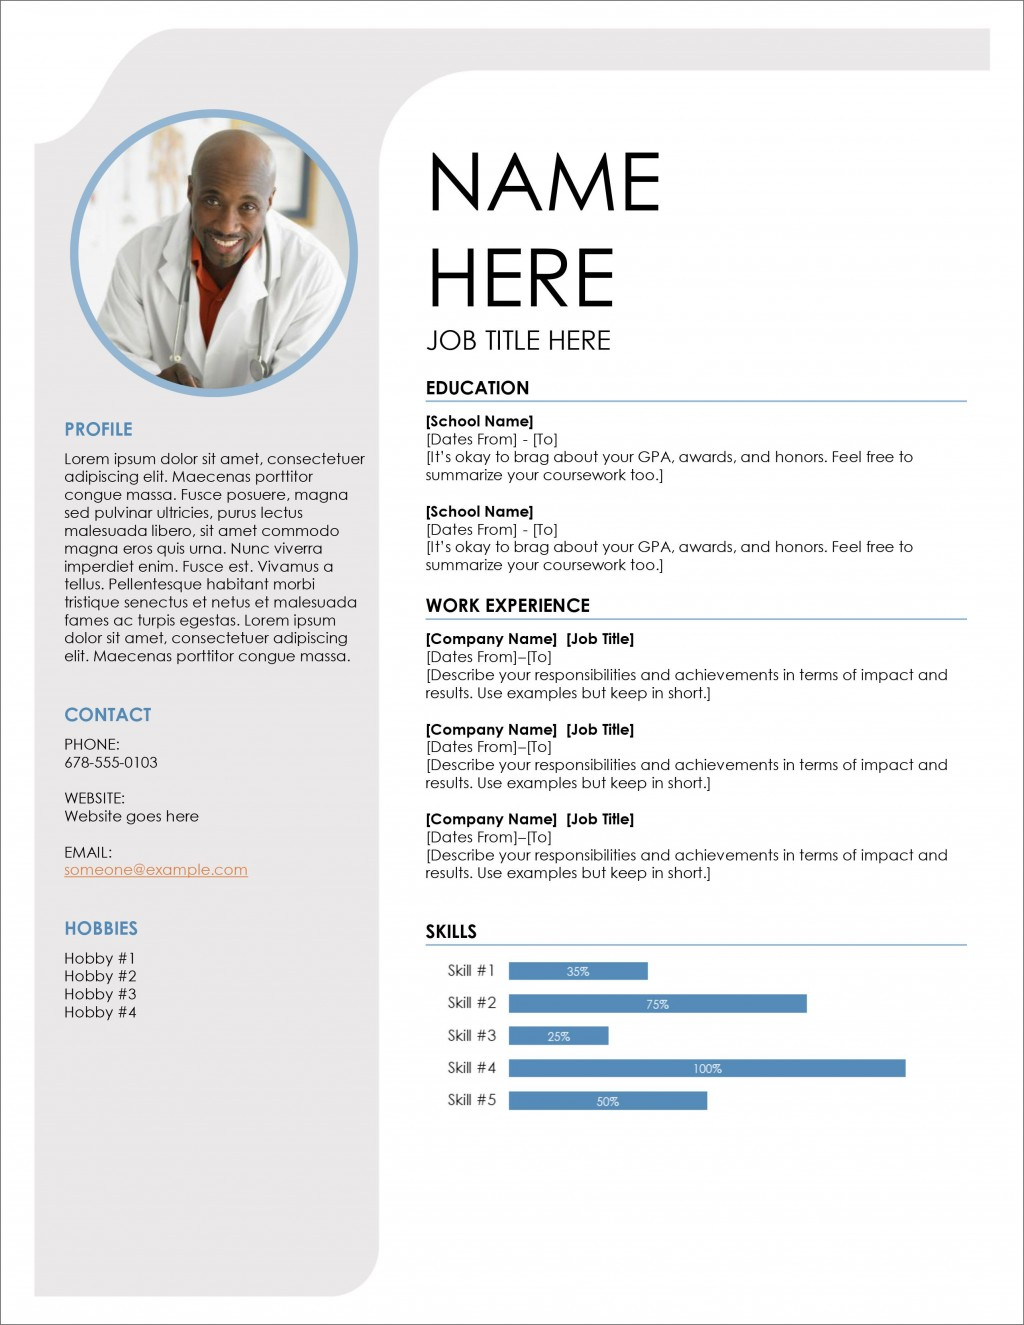 005 Surprising Download Resume Sample In Word Format High Resolution  Driver Cv Free Best TemplateLarge